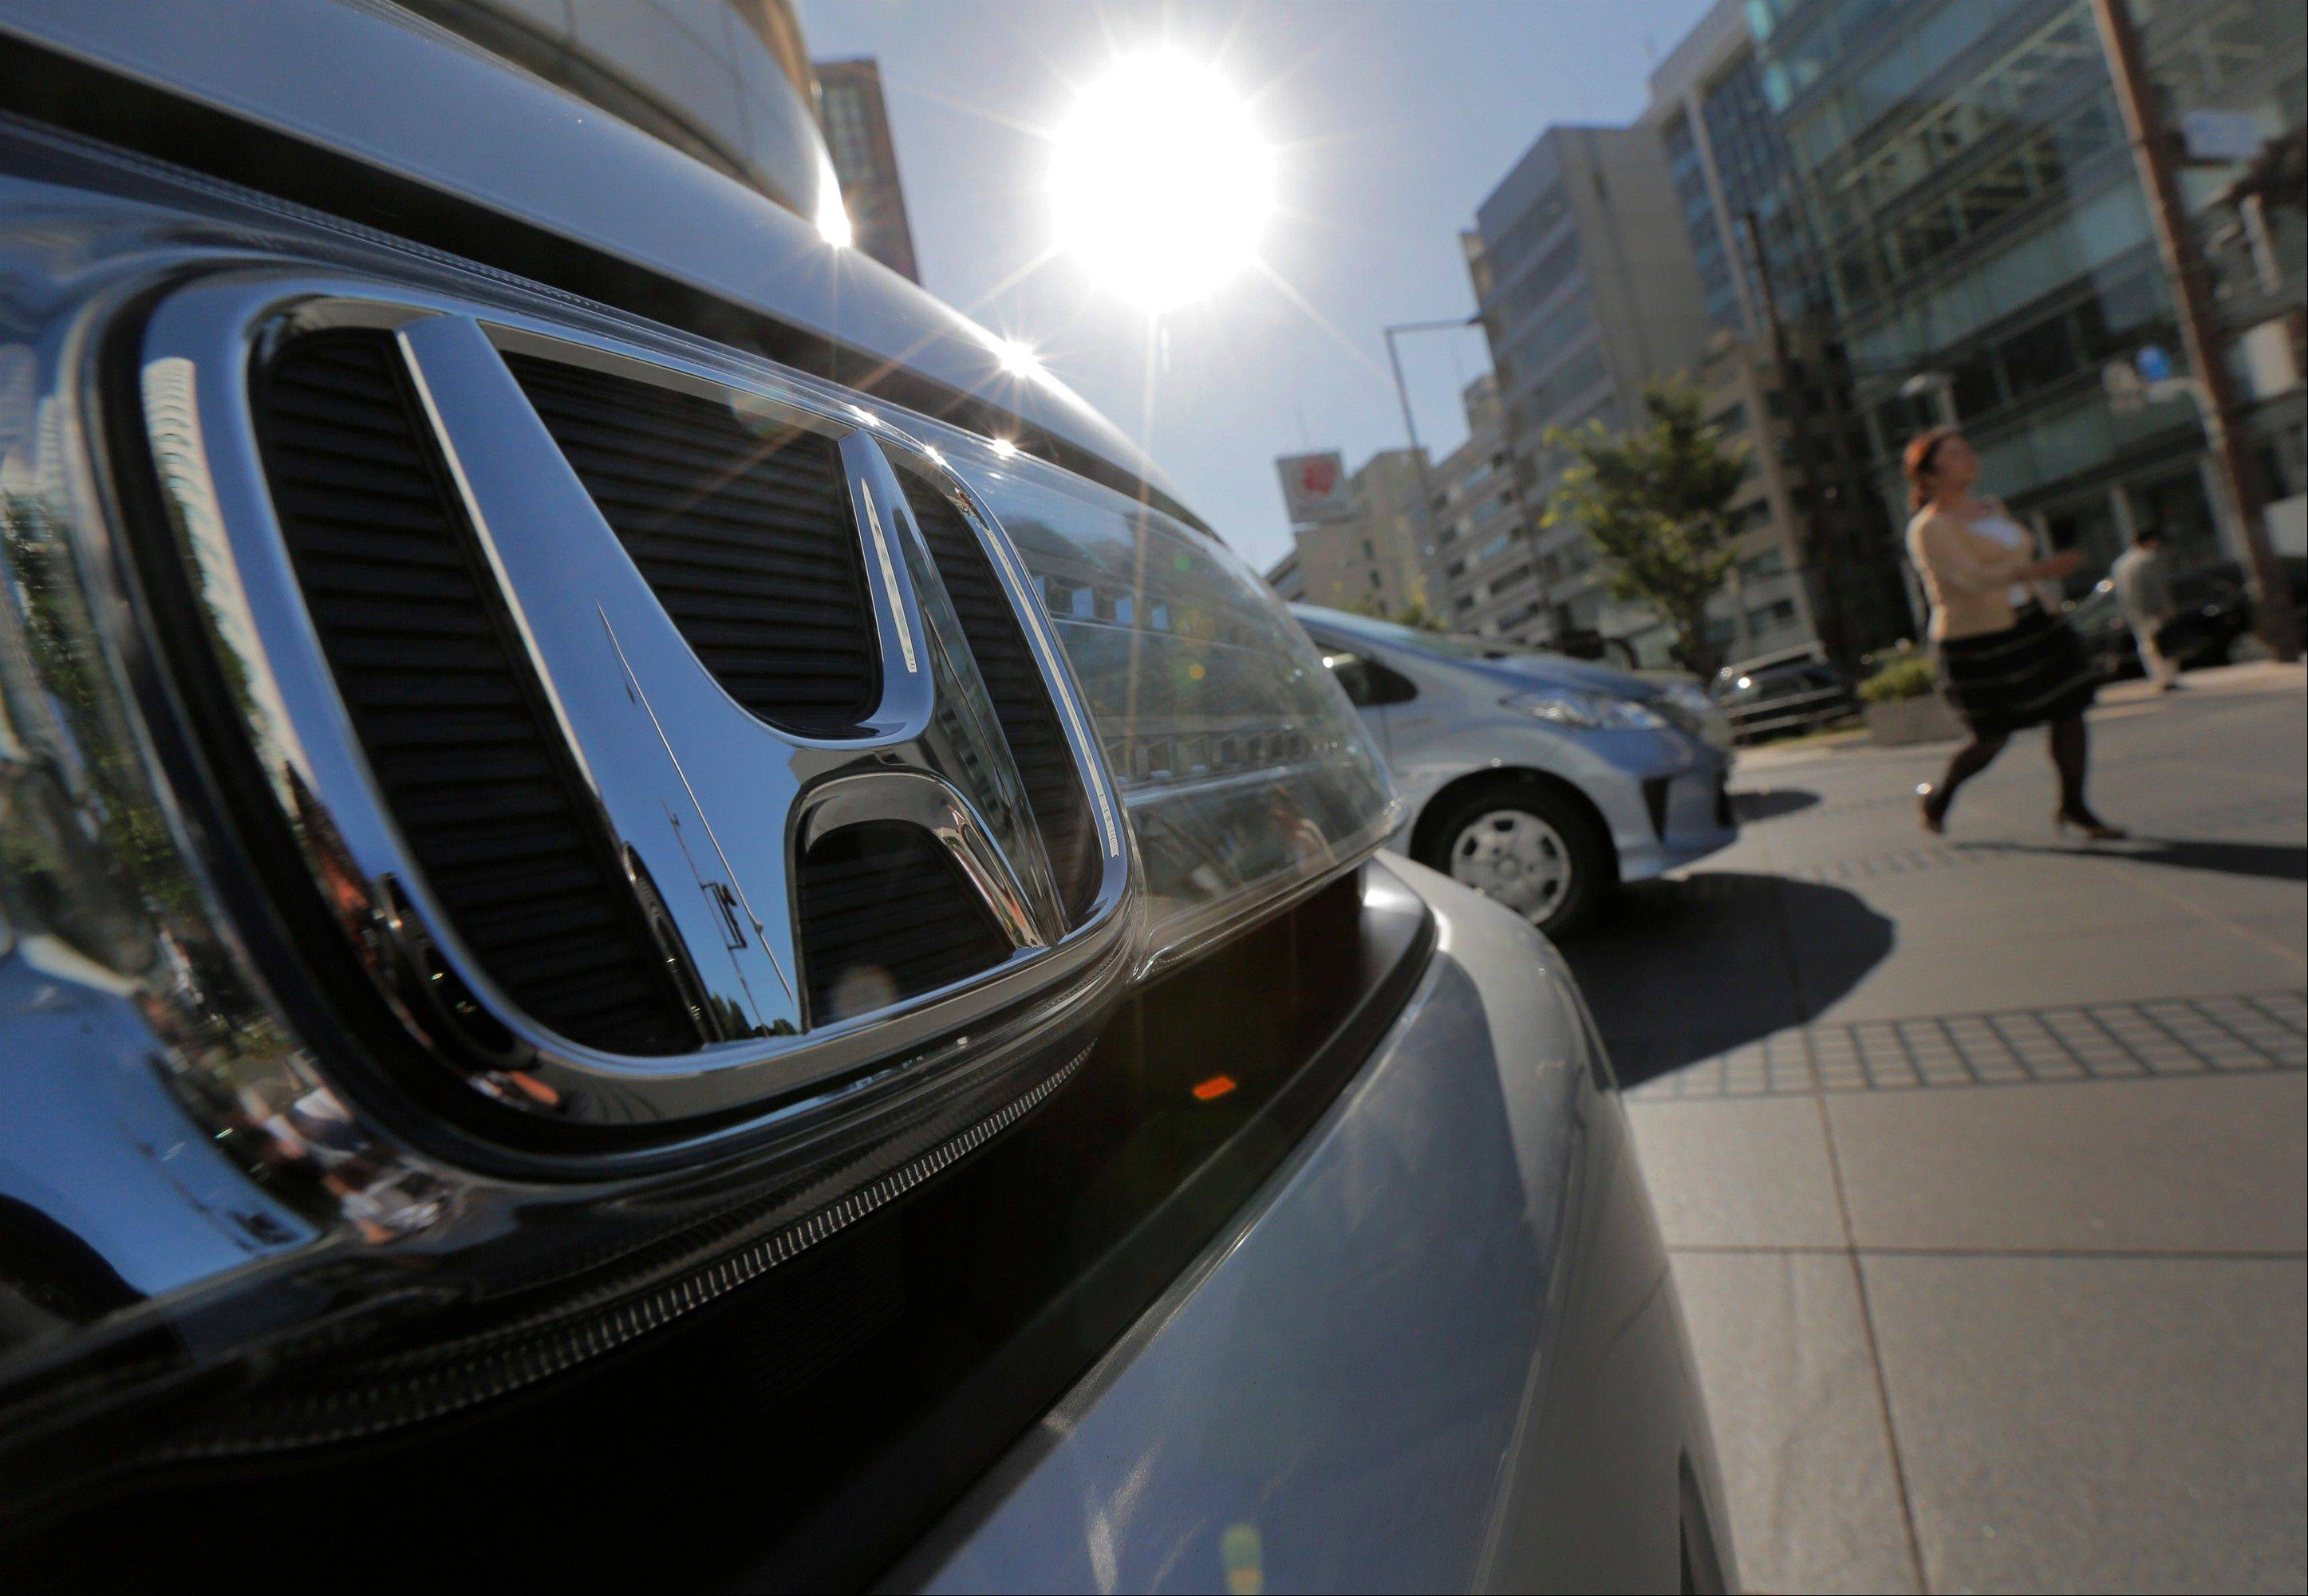 General Motors Co. and Honda Motor Co. are teaming up in a renewed push to market clean vehicles, with the two automotive giants seeking to have cheaper power- making fuel cells and hydrogen tanks ready by 2020.